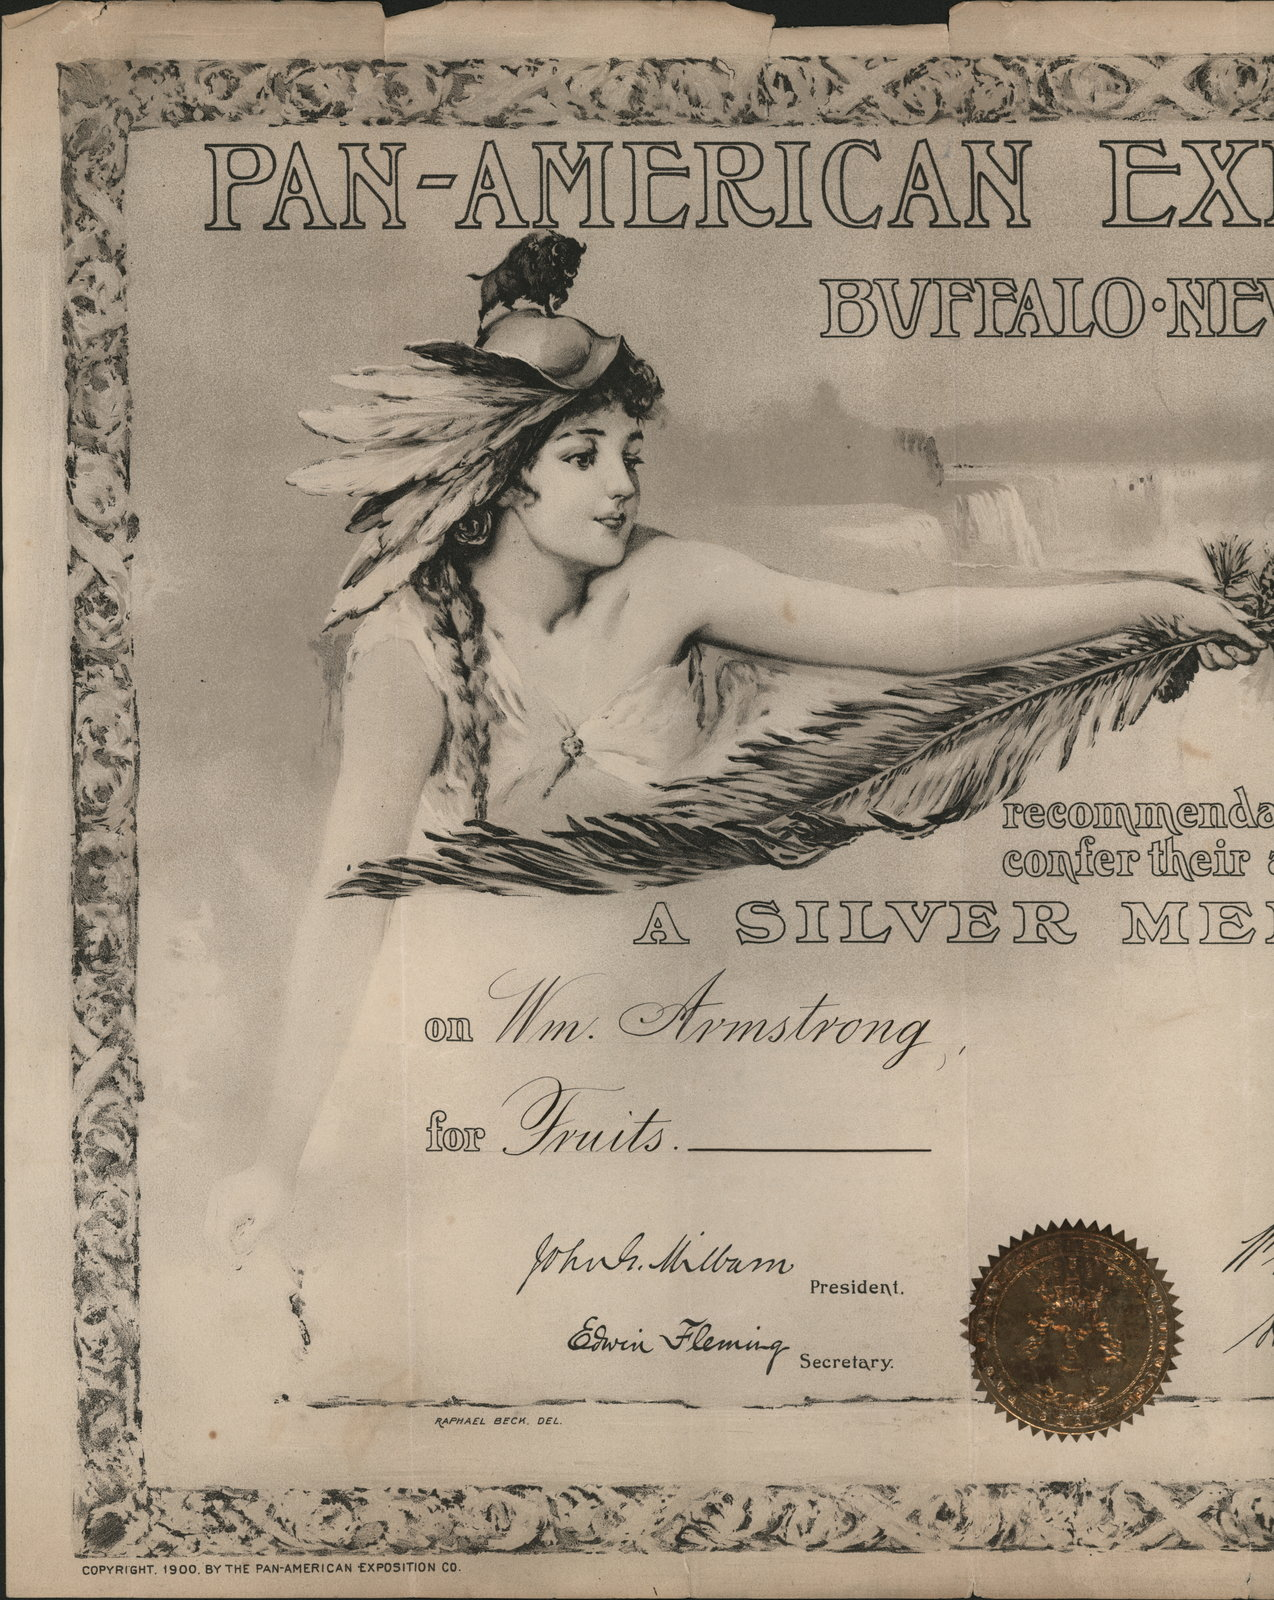 Pan-American Exposition, Silver Medal, William Armstrong